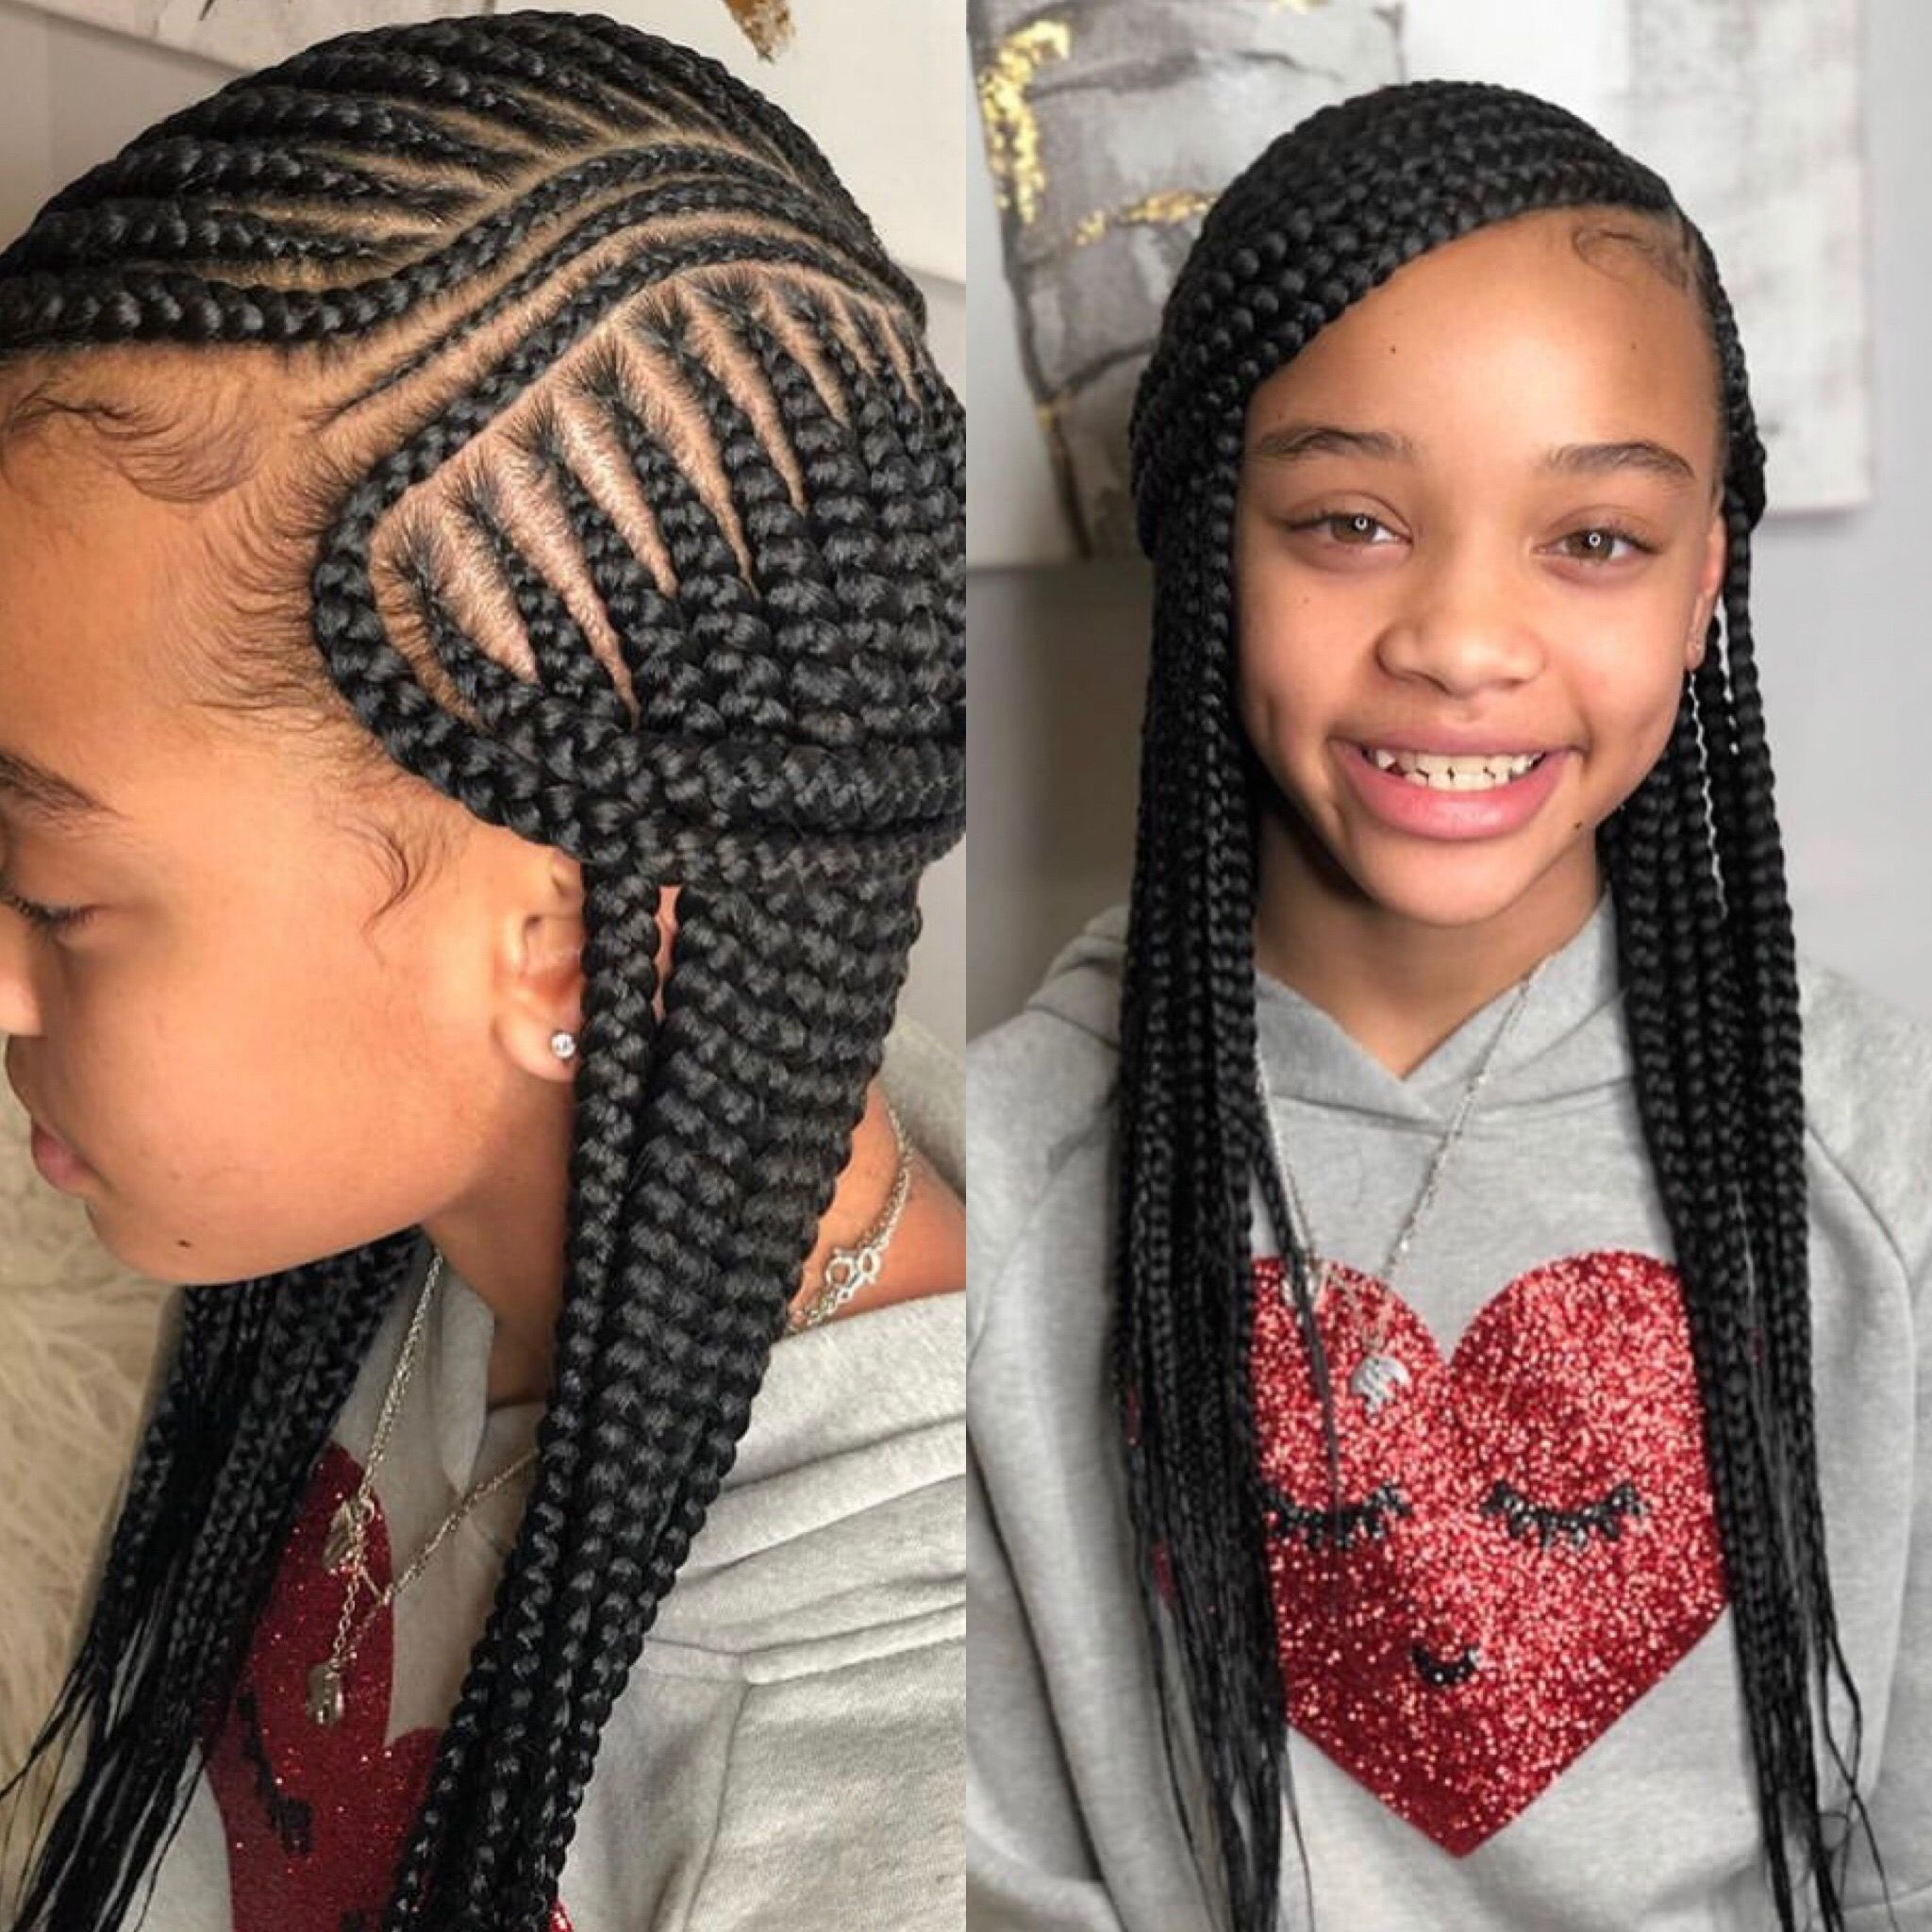 Natural Hair Style Kids Braided Hairstyles Black Kids Hairstyles African Braids Hairstyles